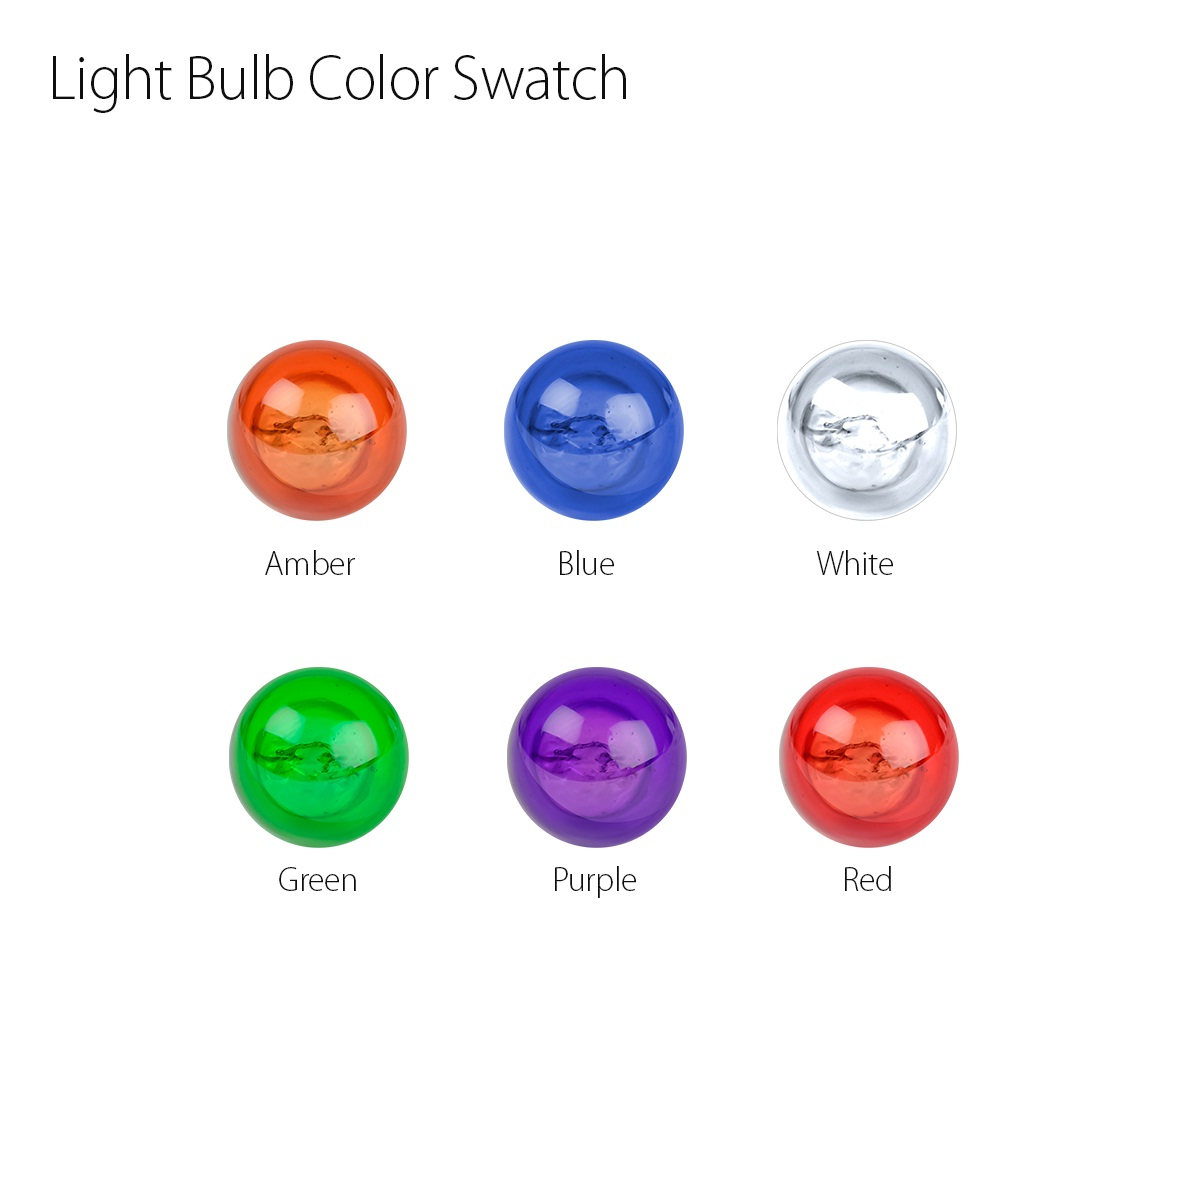 #2057 Miniature Replacement Color Light Bulb Swatch